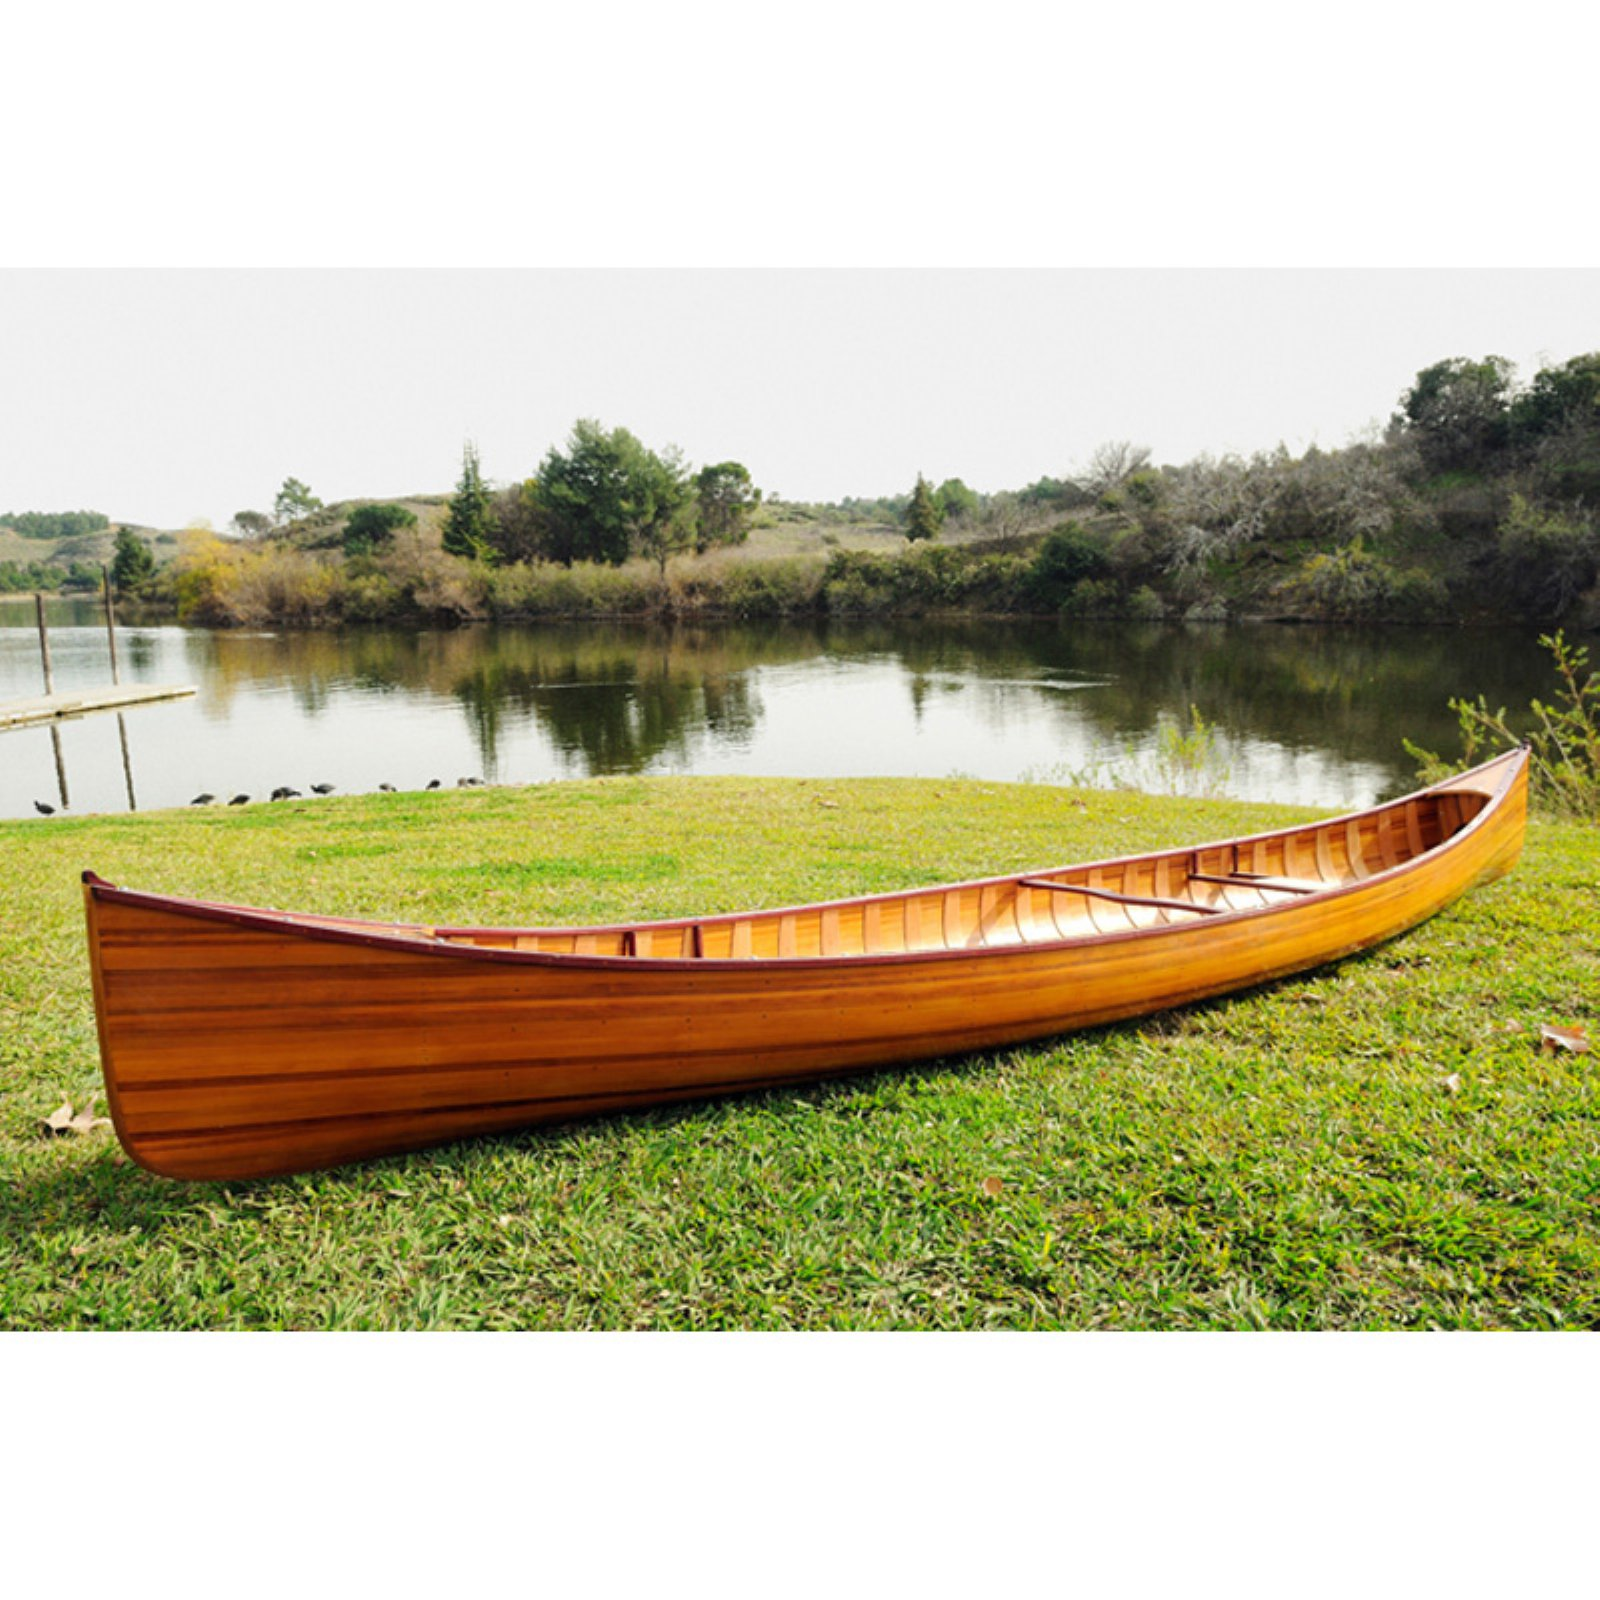 Old Modern Handicraft Real Canoe with Ribs